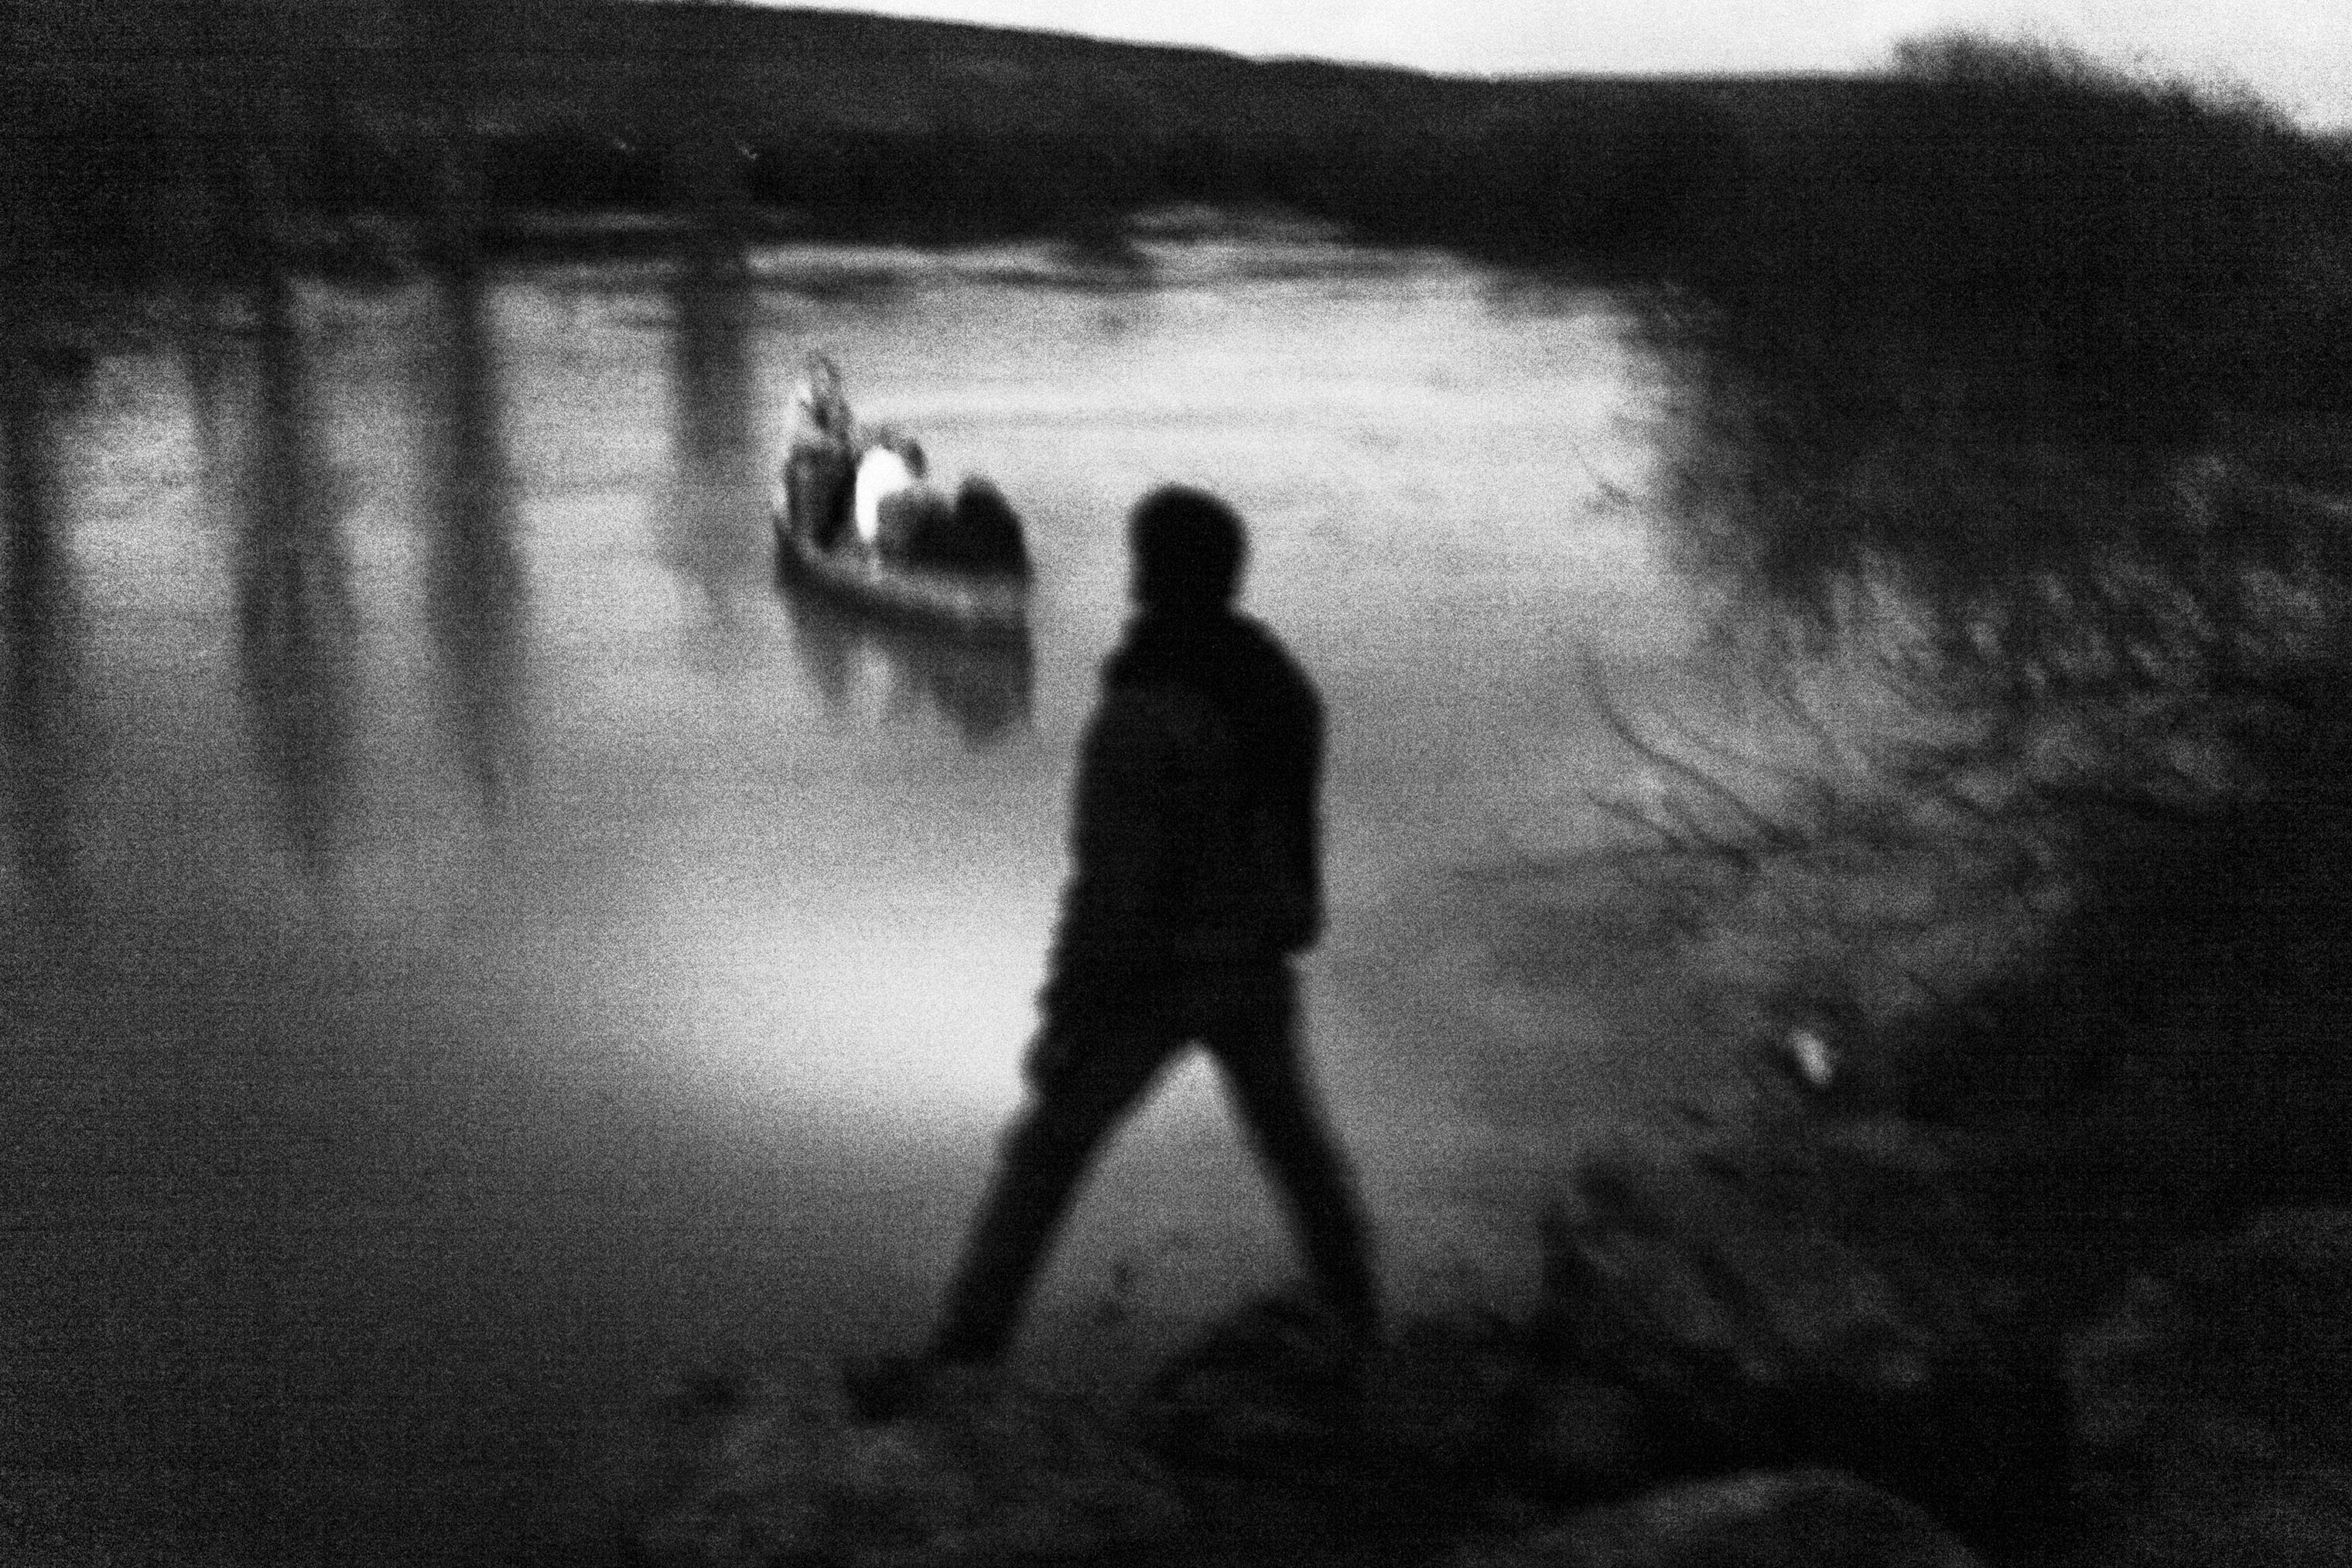 Along the Turkish-Syrian border under the cover of night, a network of Syrian smugglers transport a family fleeing the violence inside Syria on a rowboat across the Orontes River, which marks a stretch of the border between northern Syria and southern Turkey.